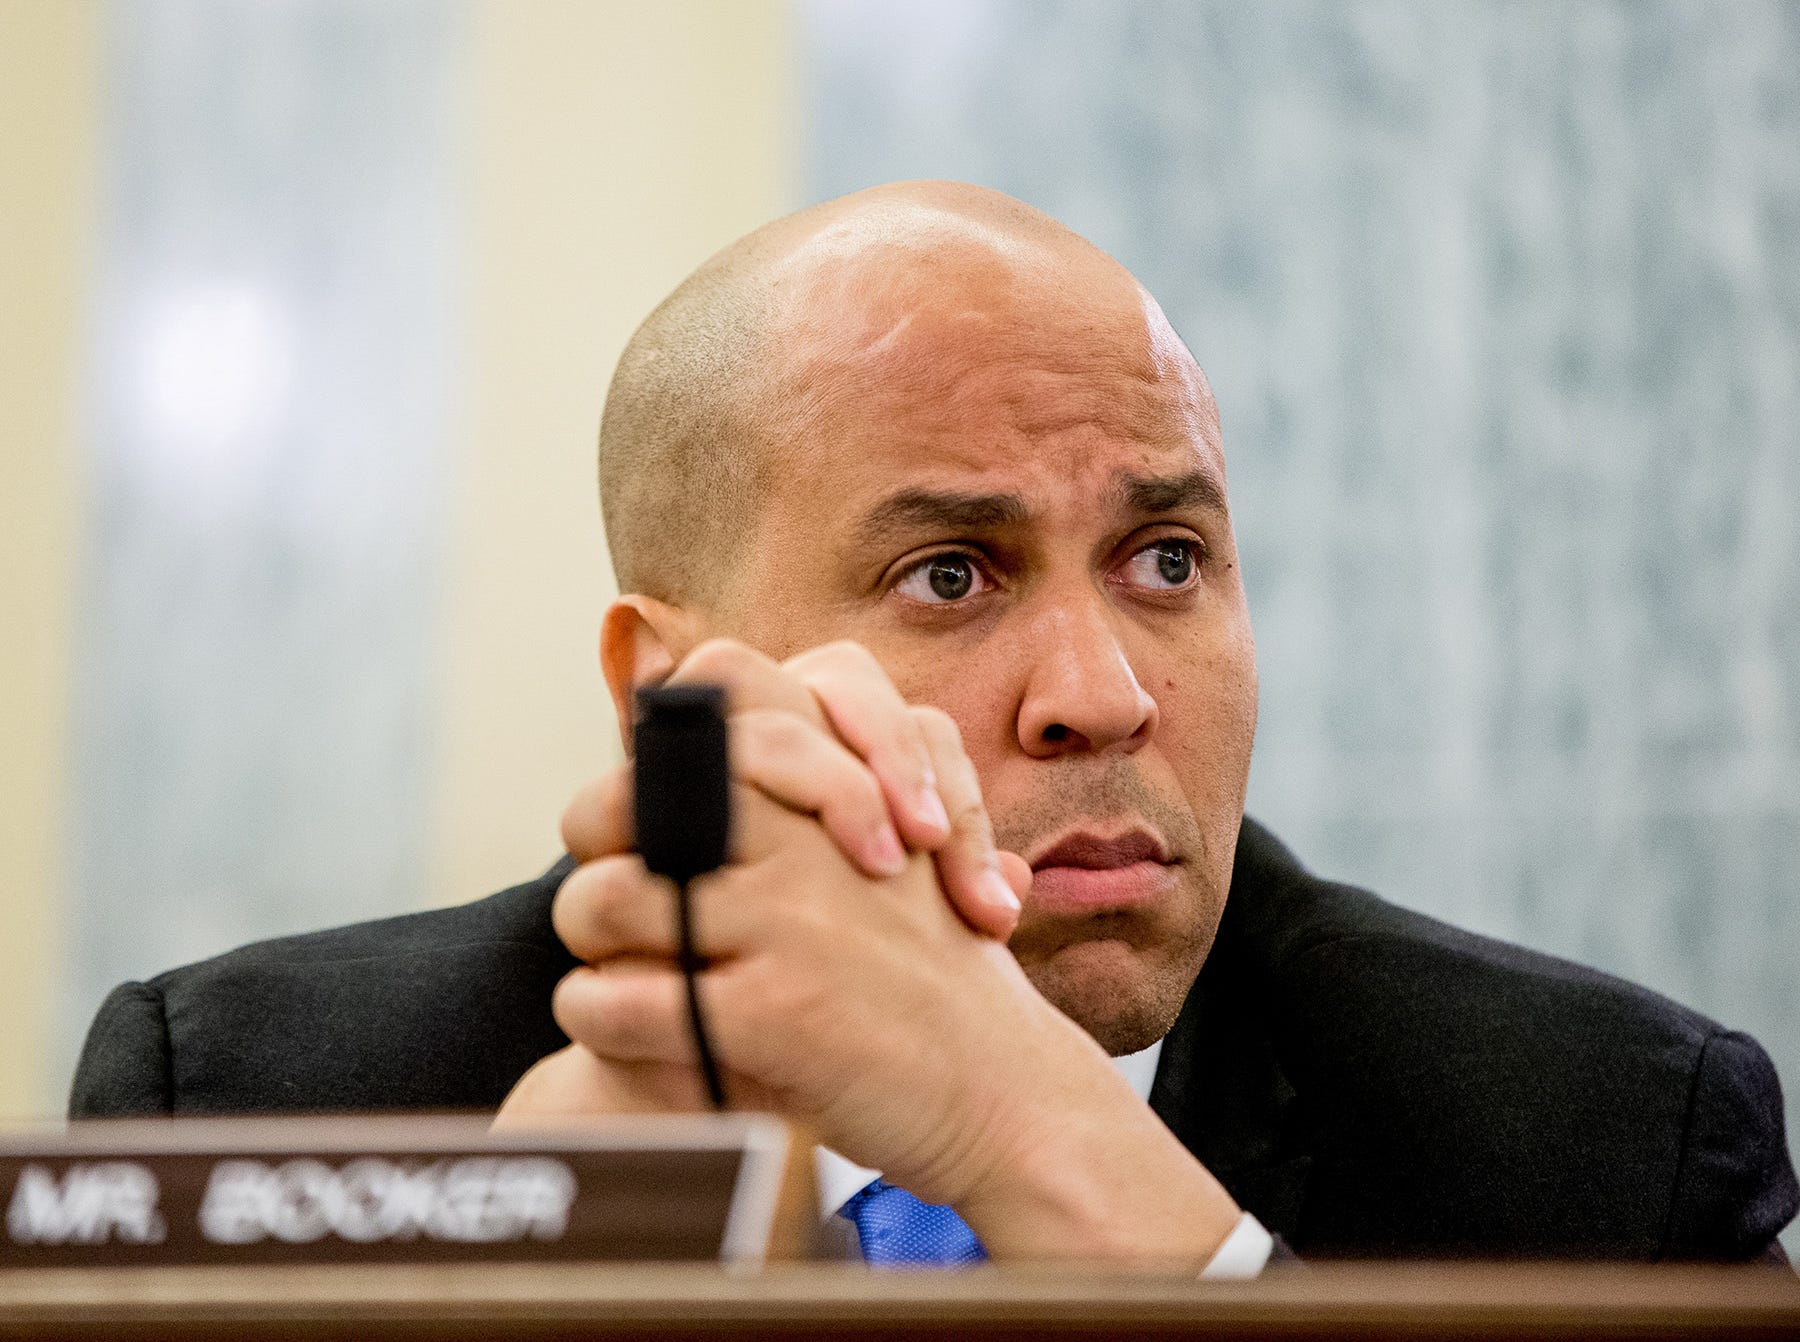 In this June 10, 2015 file photo, Sen. Cory Booker, D-N.J., attends a Senate Commerce, Science and Transportation hearing on Capitol Hill in Washington.   Booker announced his support for the Iran nuclear deal on Thursday, siding with President Barack Obama and bucking home-state pressures.